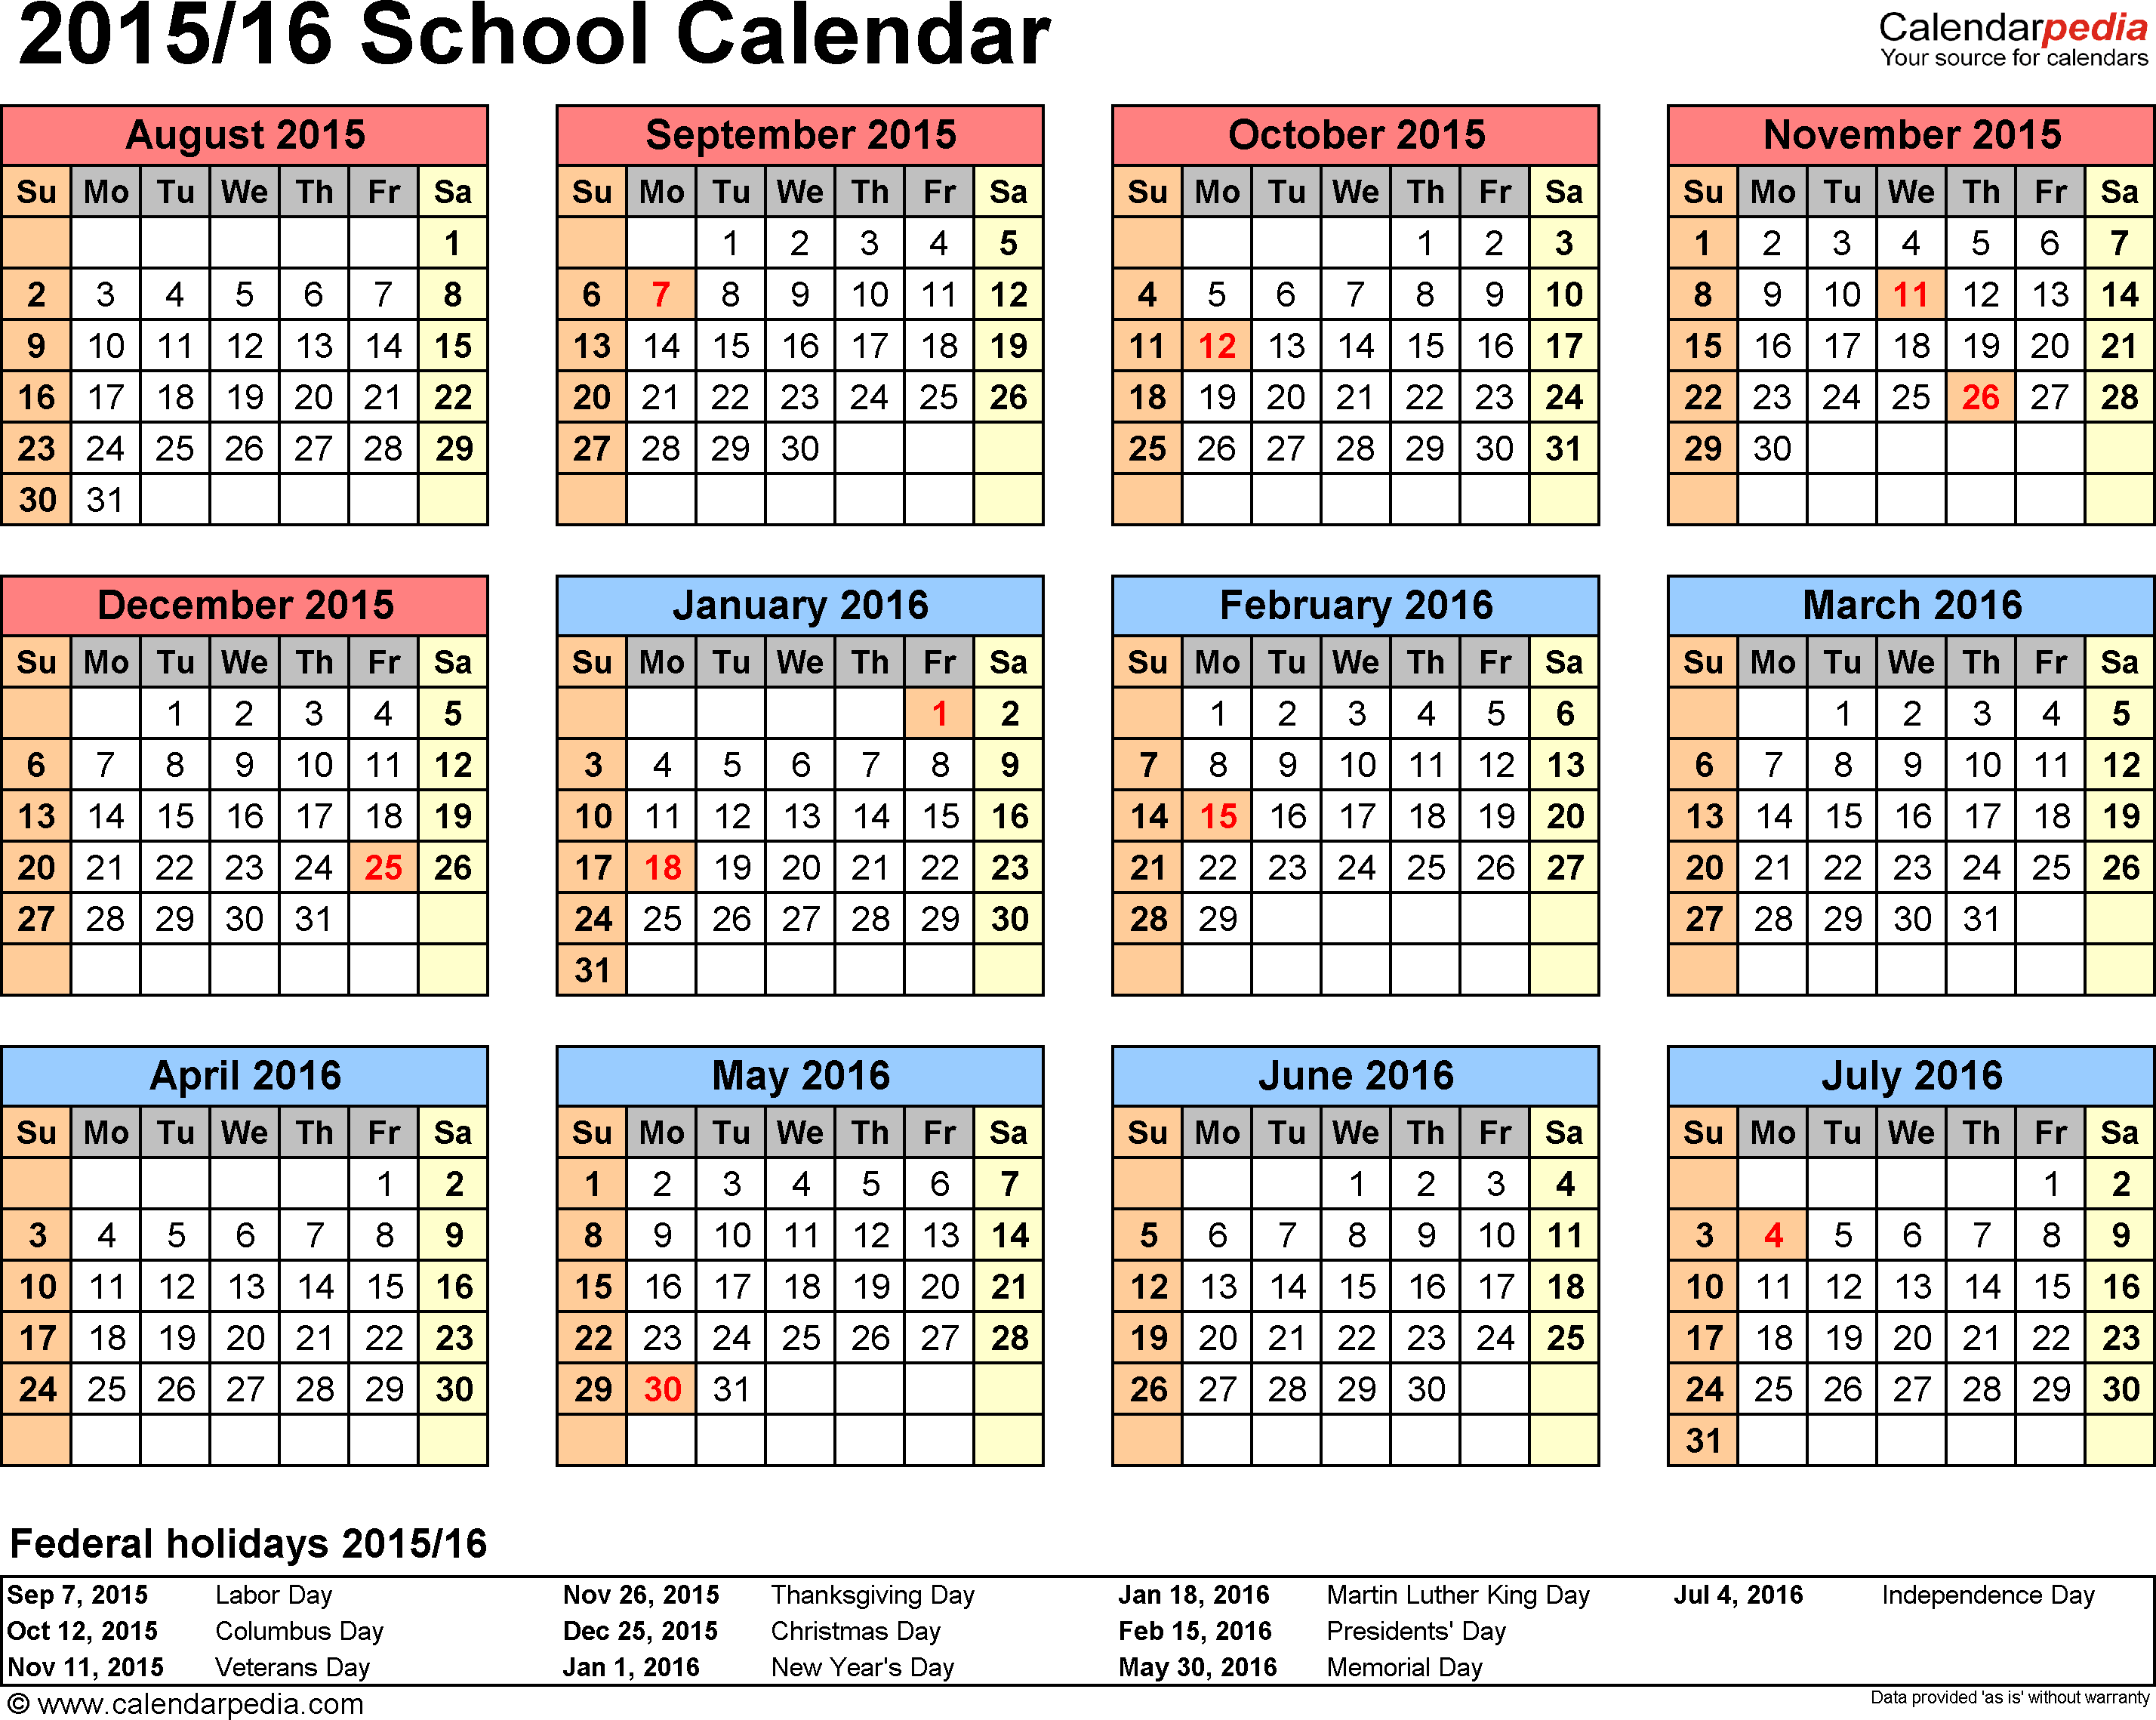 Template 4: School calendar 2015/16 for PDF, landscape orientation, year at a glance, 1 page